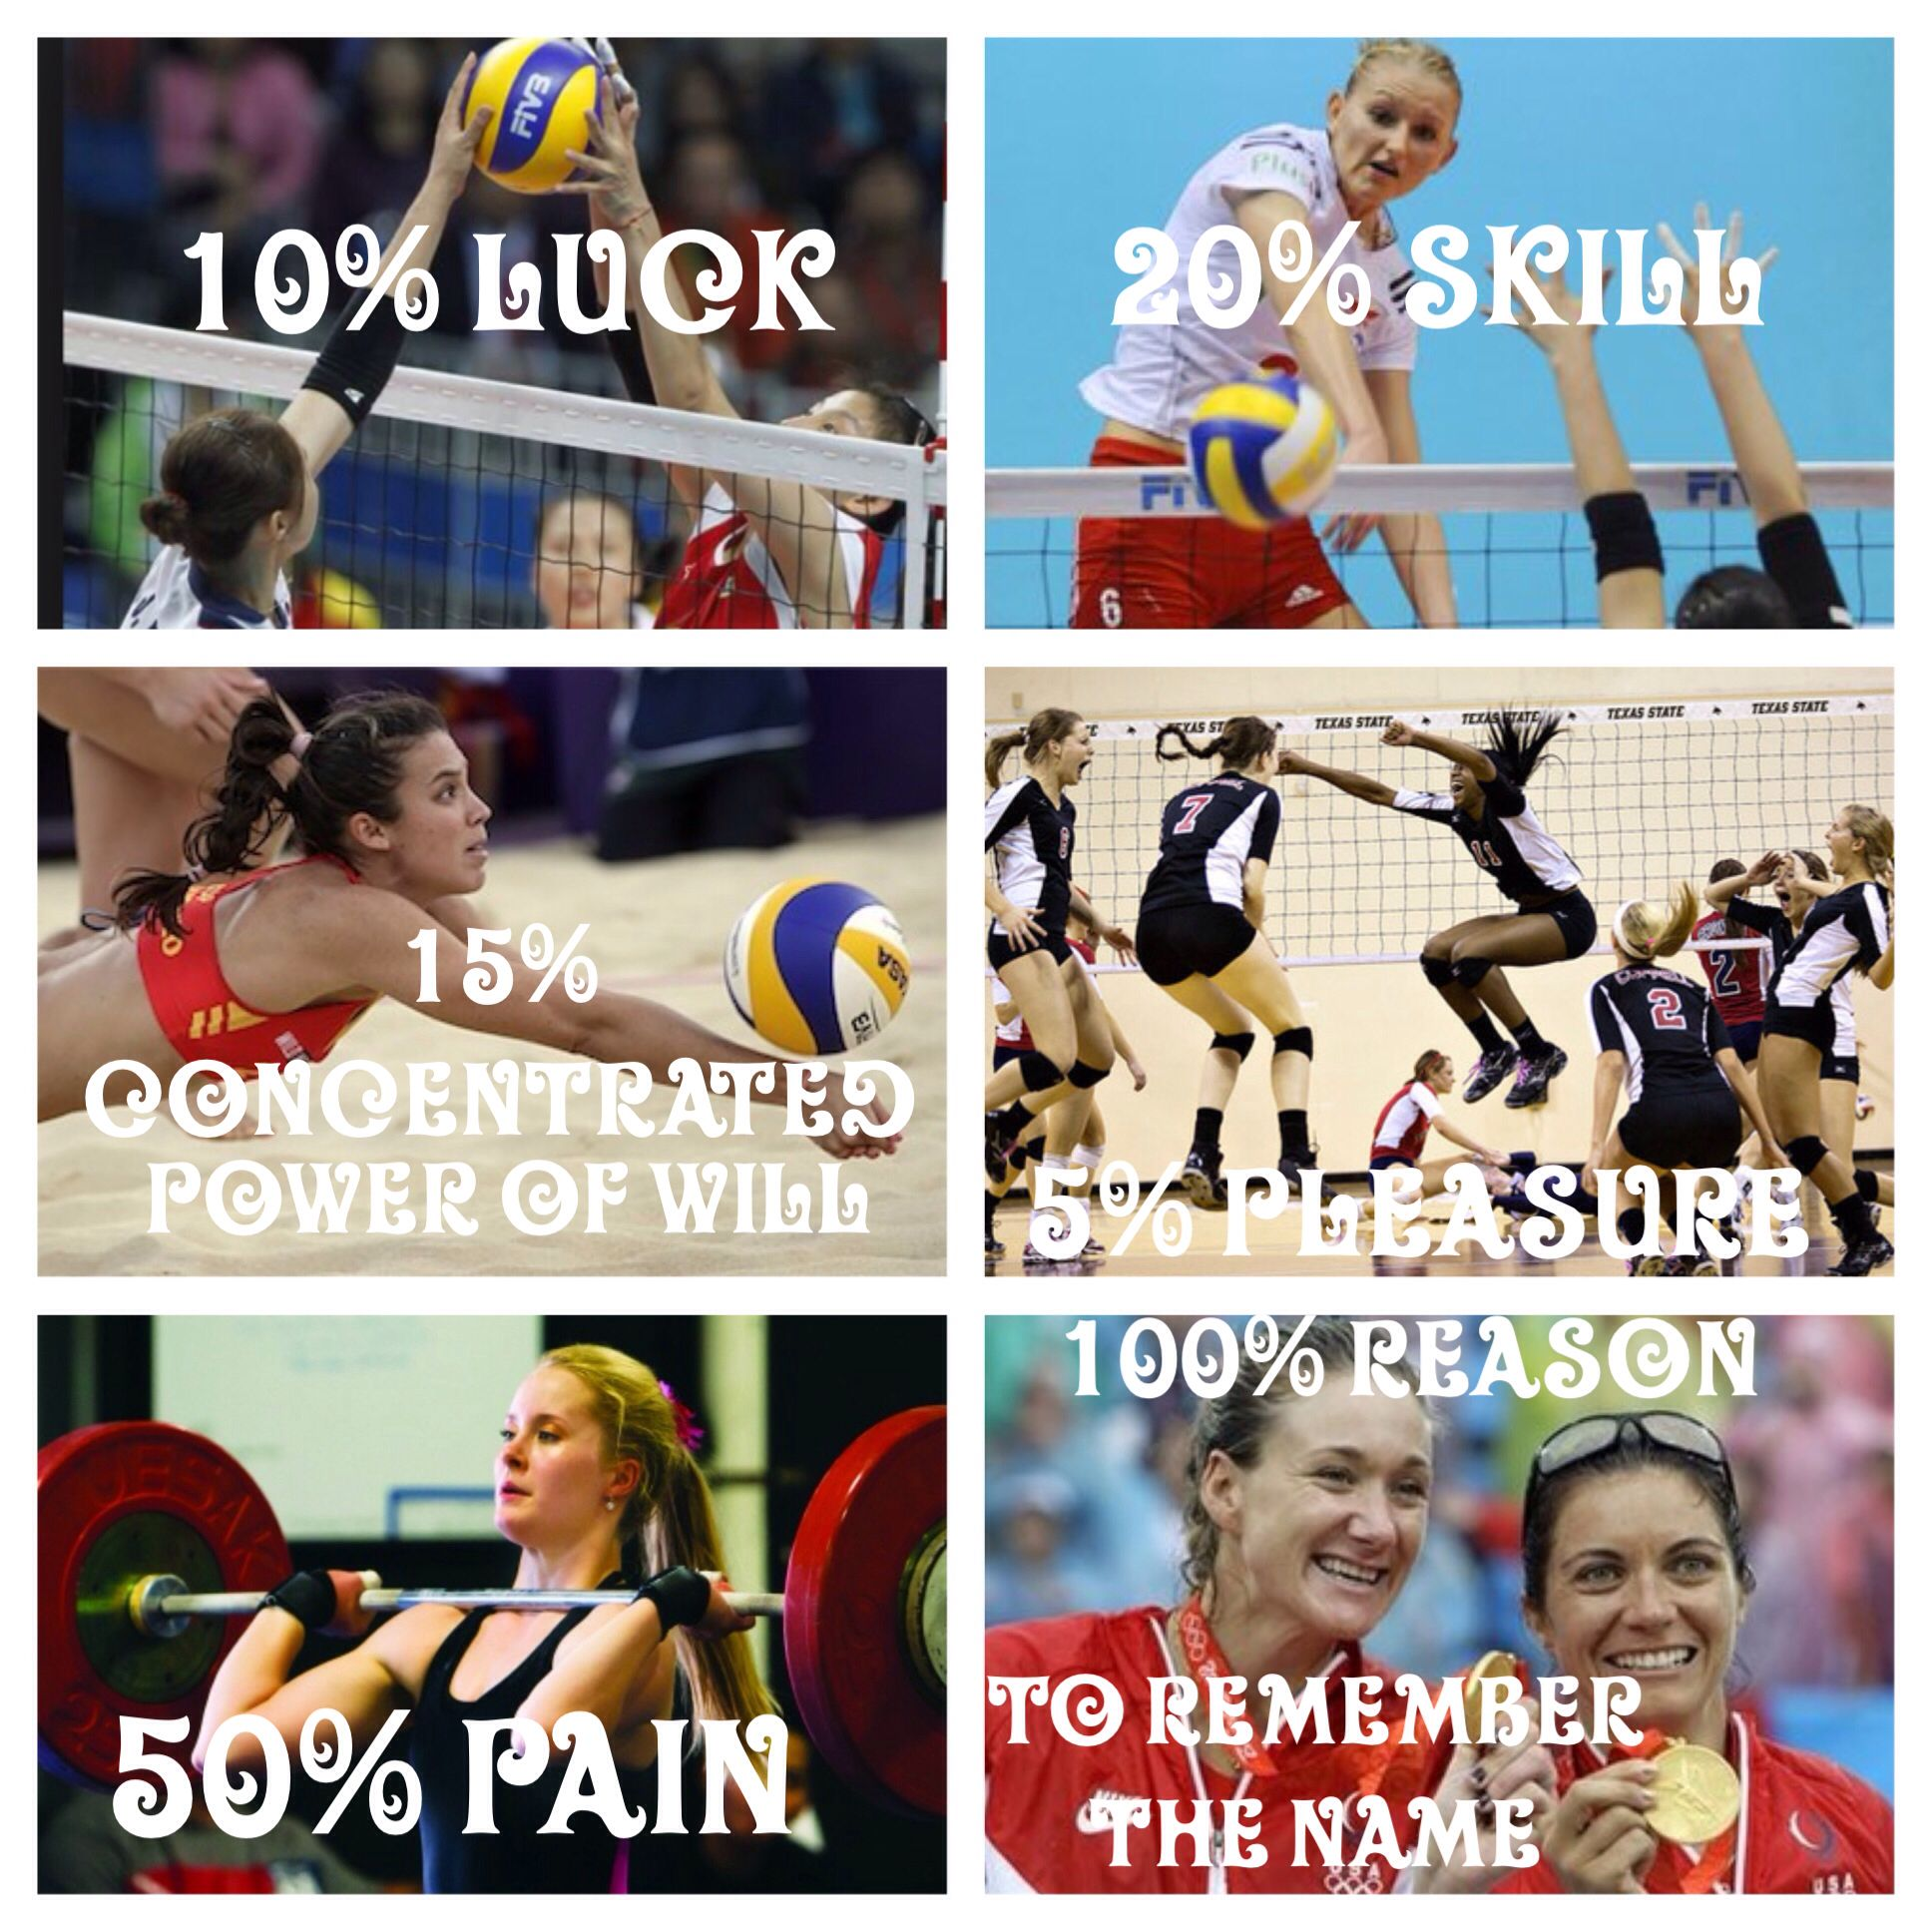 Volleyball Motivation It May Be Hard At First But When You Set Your Mind On The Win At The End It Volleyball Motivation Volleyball Jokes Volleyball Inspiration